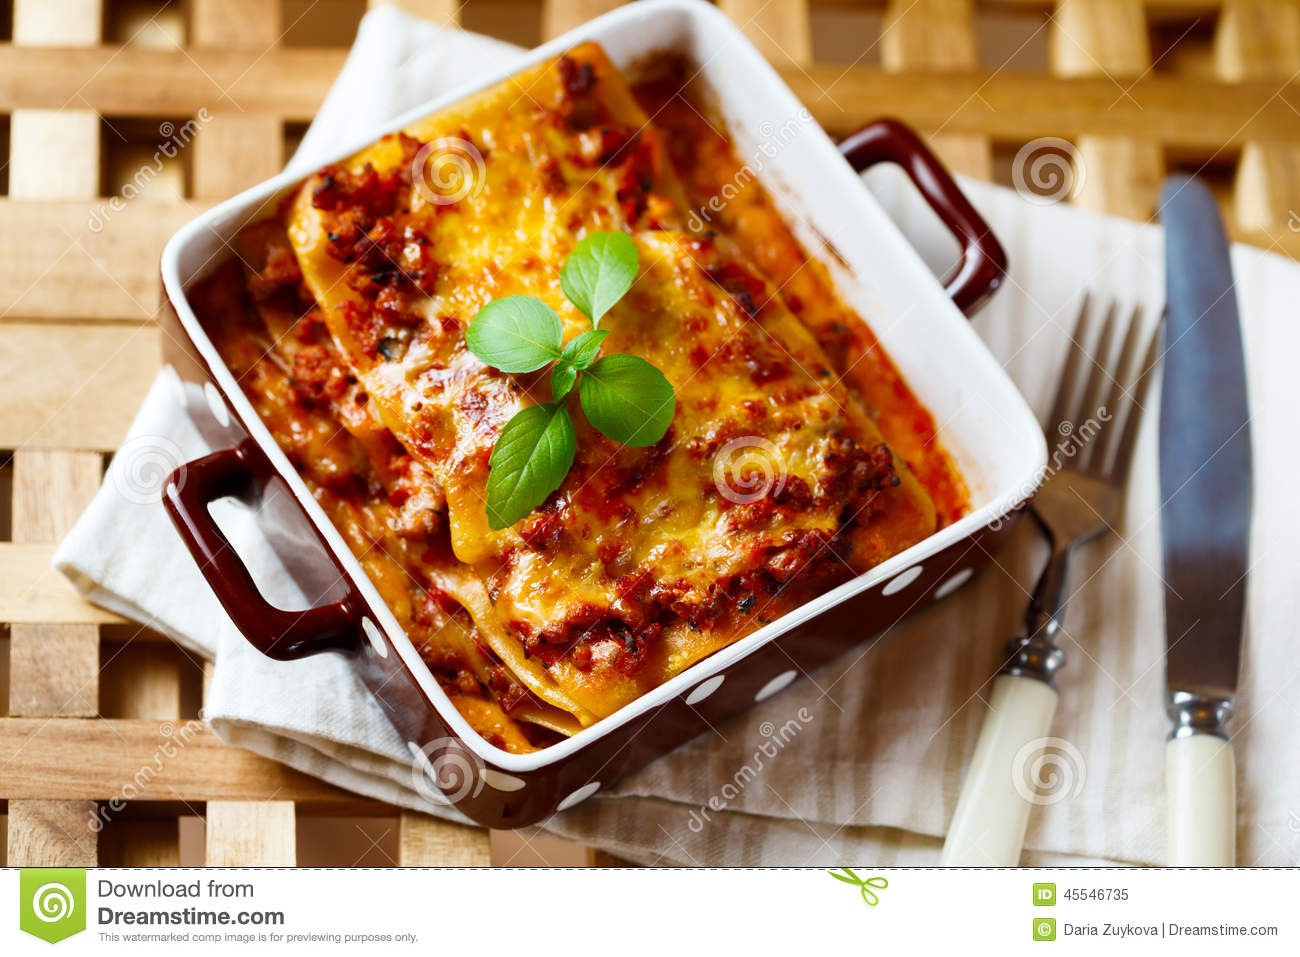 ... Lasagna plate served with fresh basil leaf on wooden table. Top view